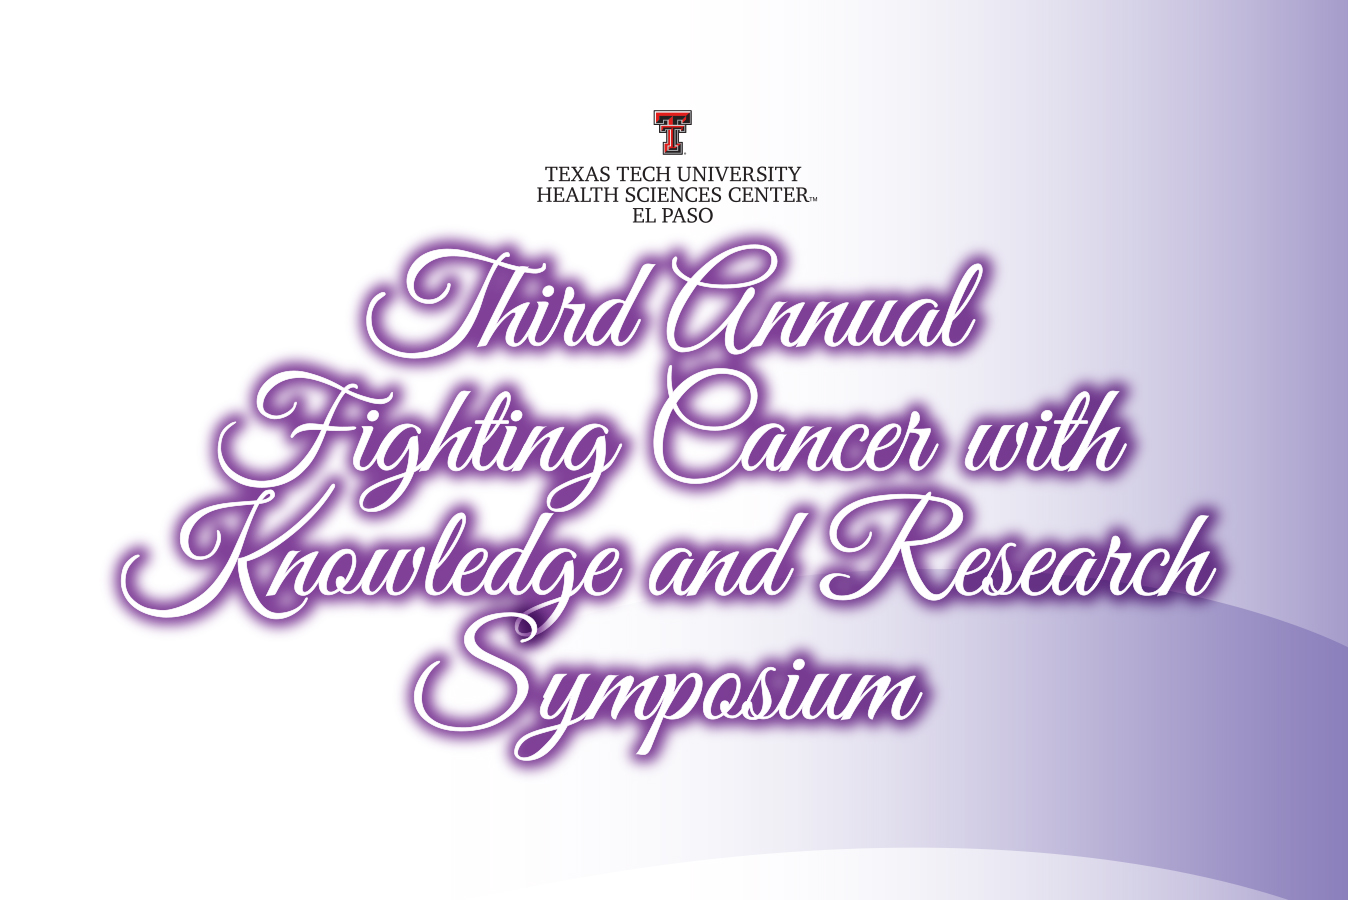 Third Annual Fighting Cancer with Knowledge and Research Symposium